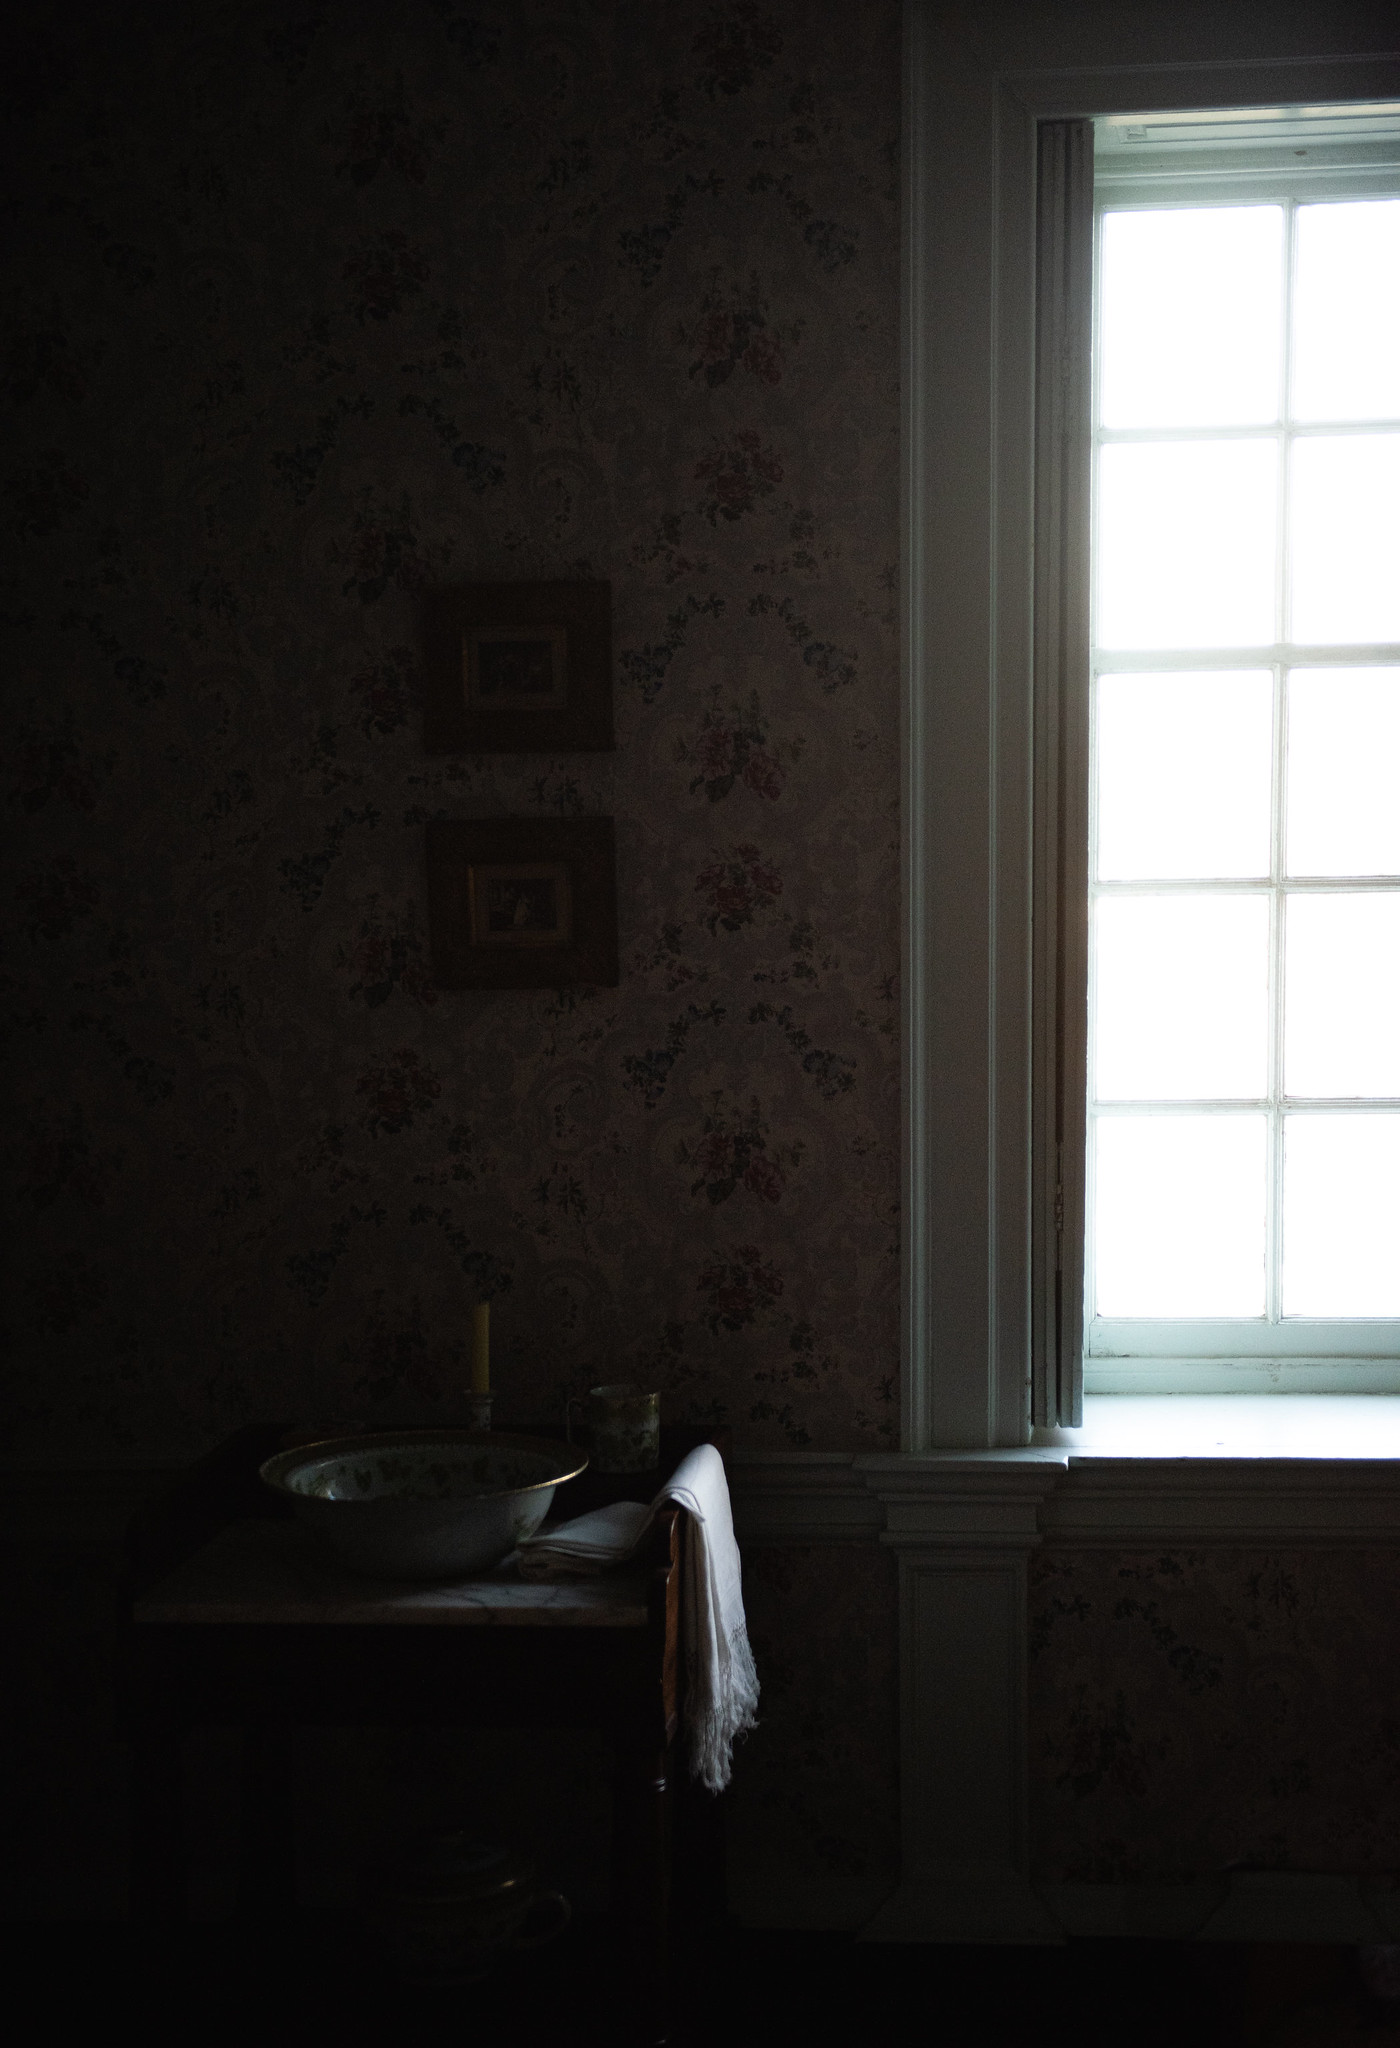 Afternoon Light in an Unfamilliar House